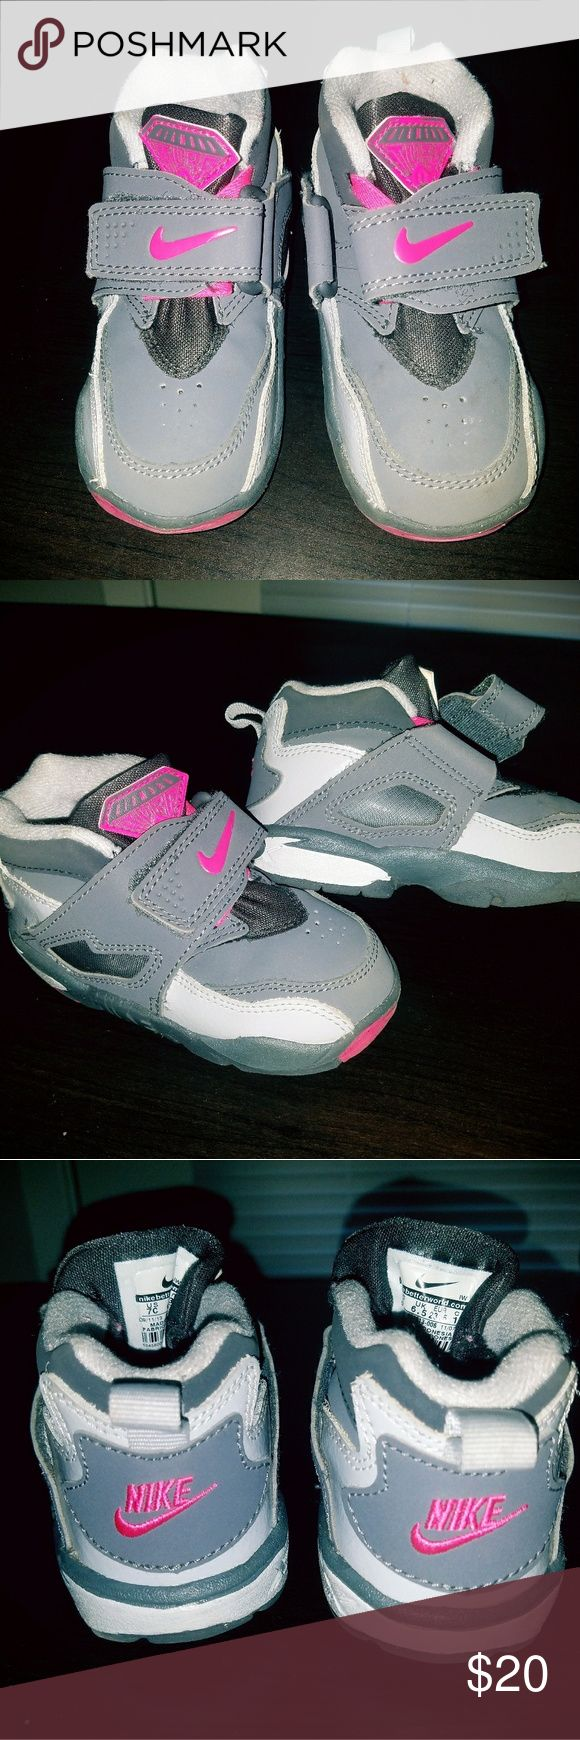 Toddler Diamond Nike Turfs Excellent used condition. My daughter grew out of them way too fast! Loved these shoes.. Nike Shoes Sneakers